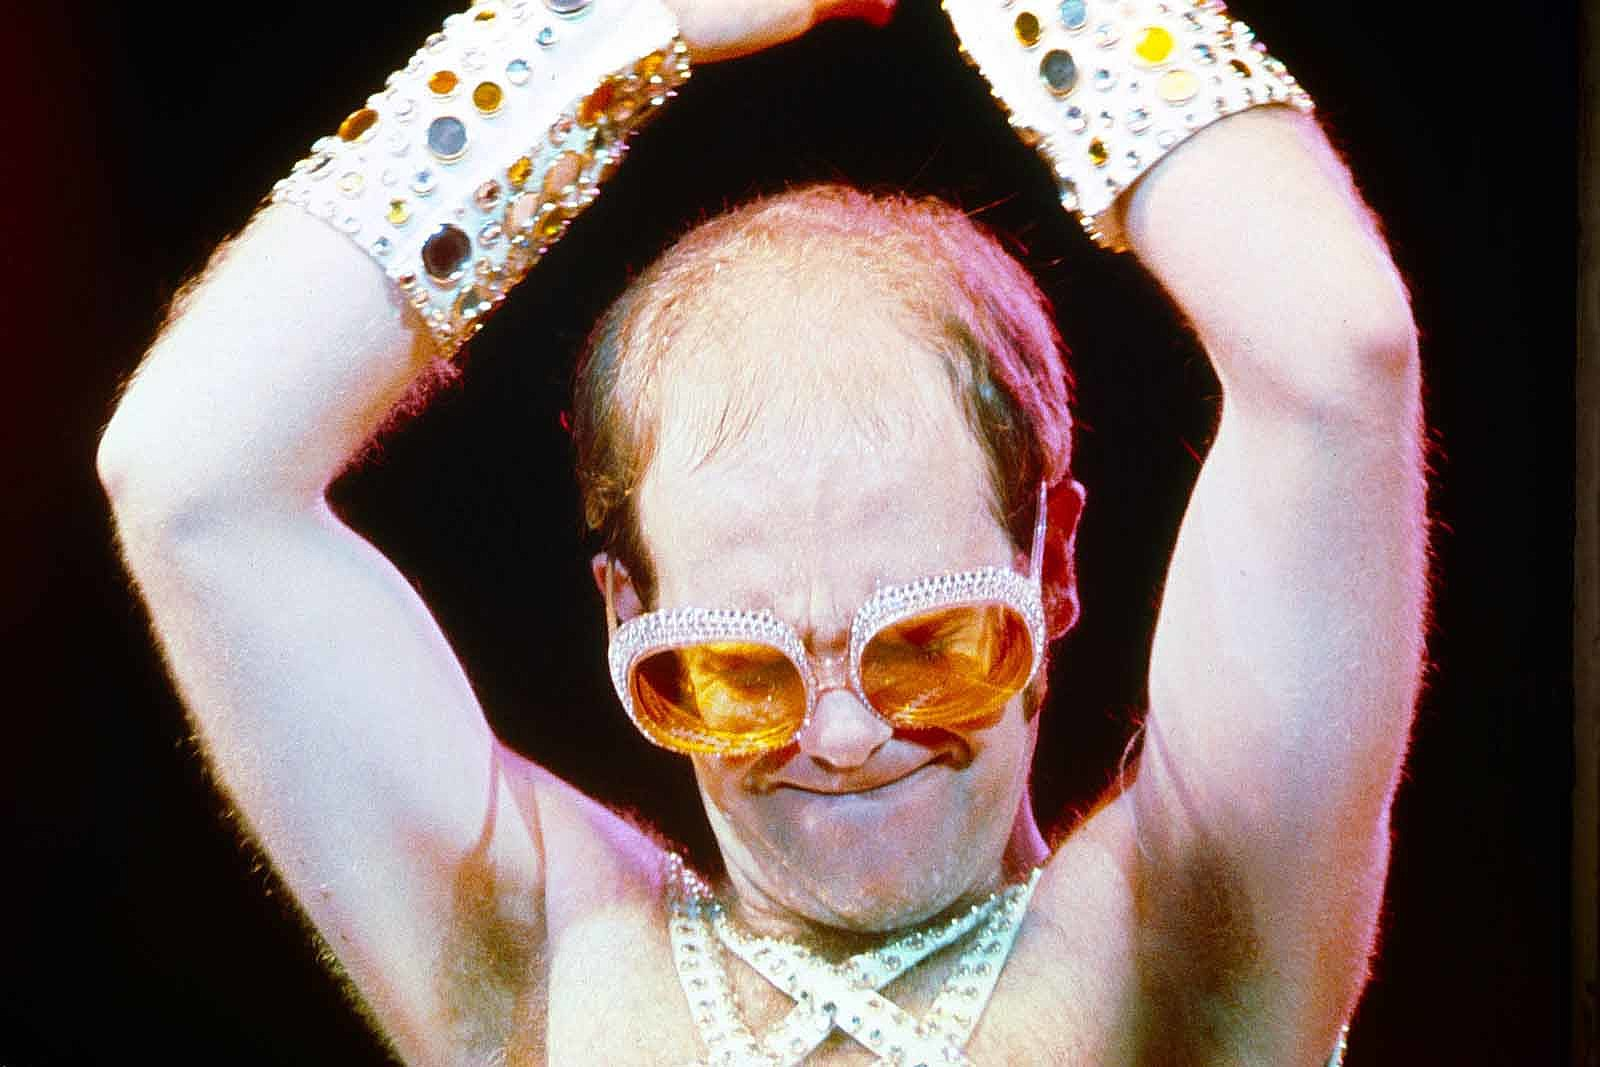 The Story of Elton John's 1975 Suicide Attempt